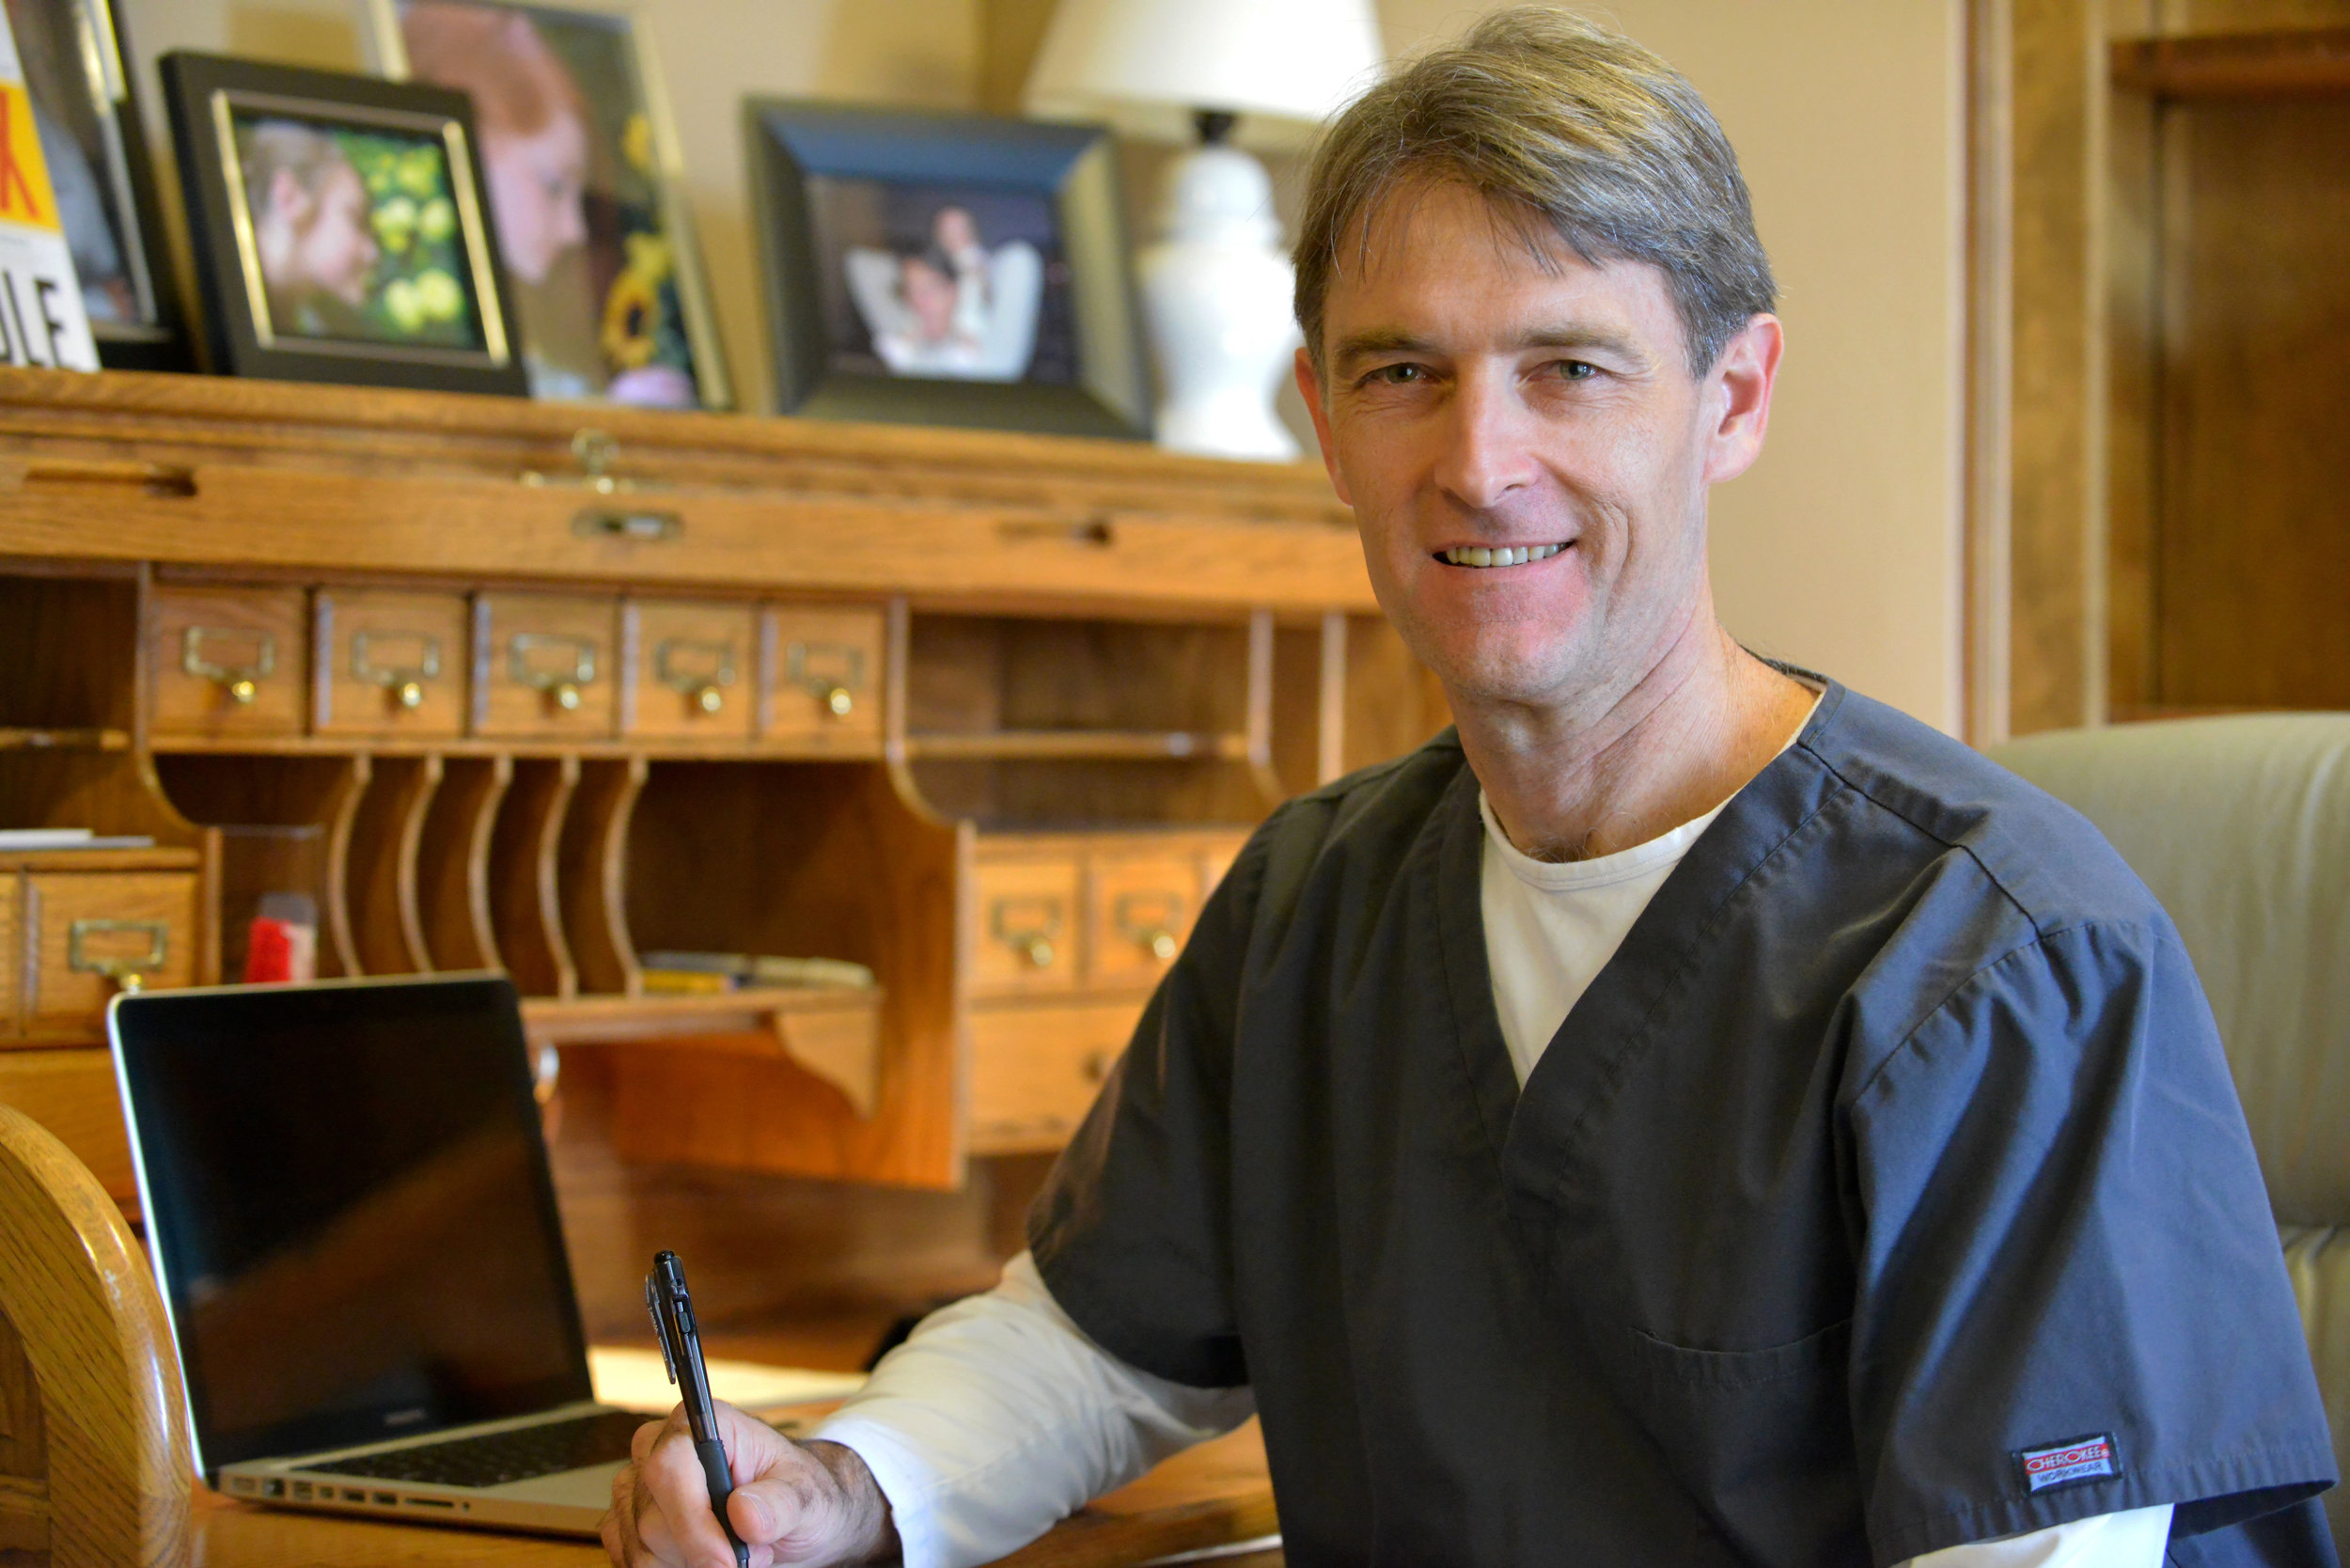 Dr. Lind working on health and fitness ideas